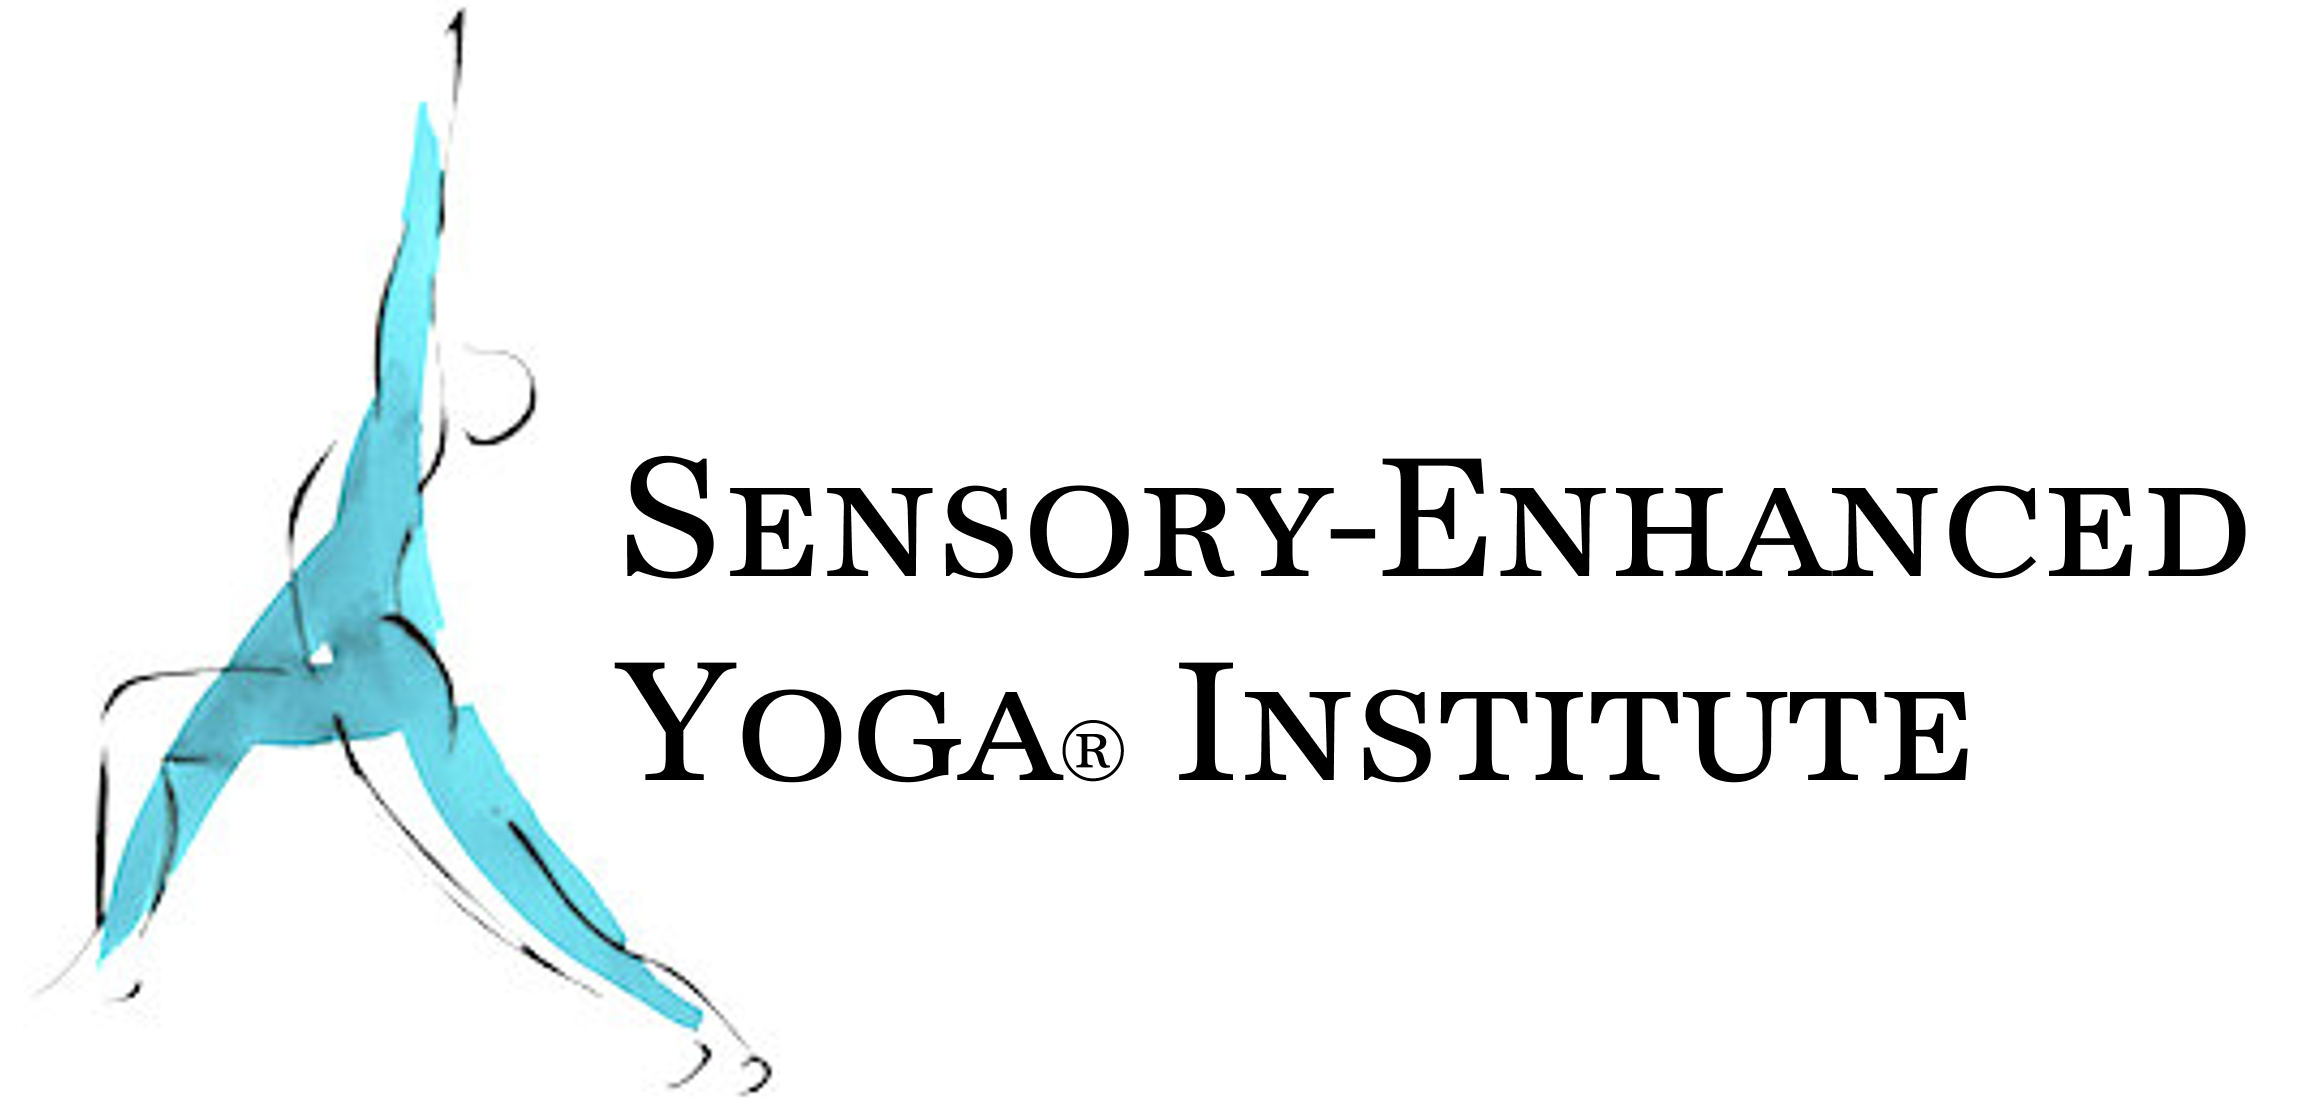 Sensory-Enhanced Yoga